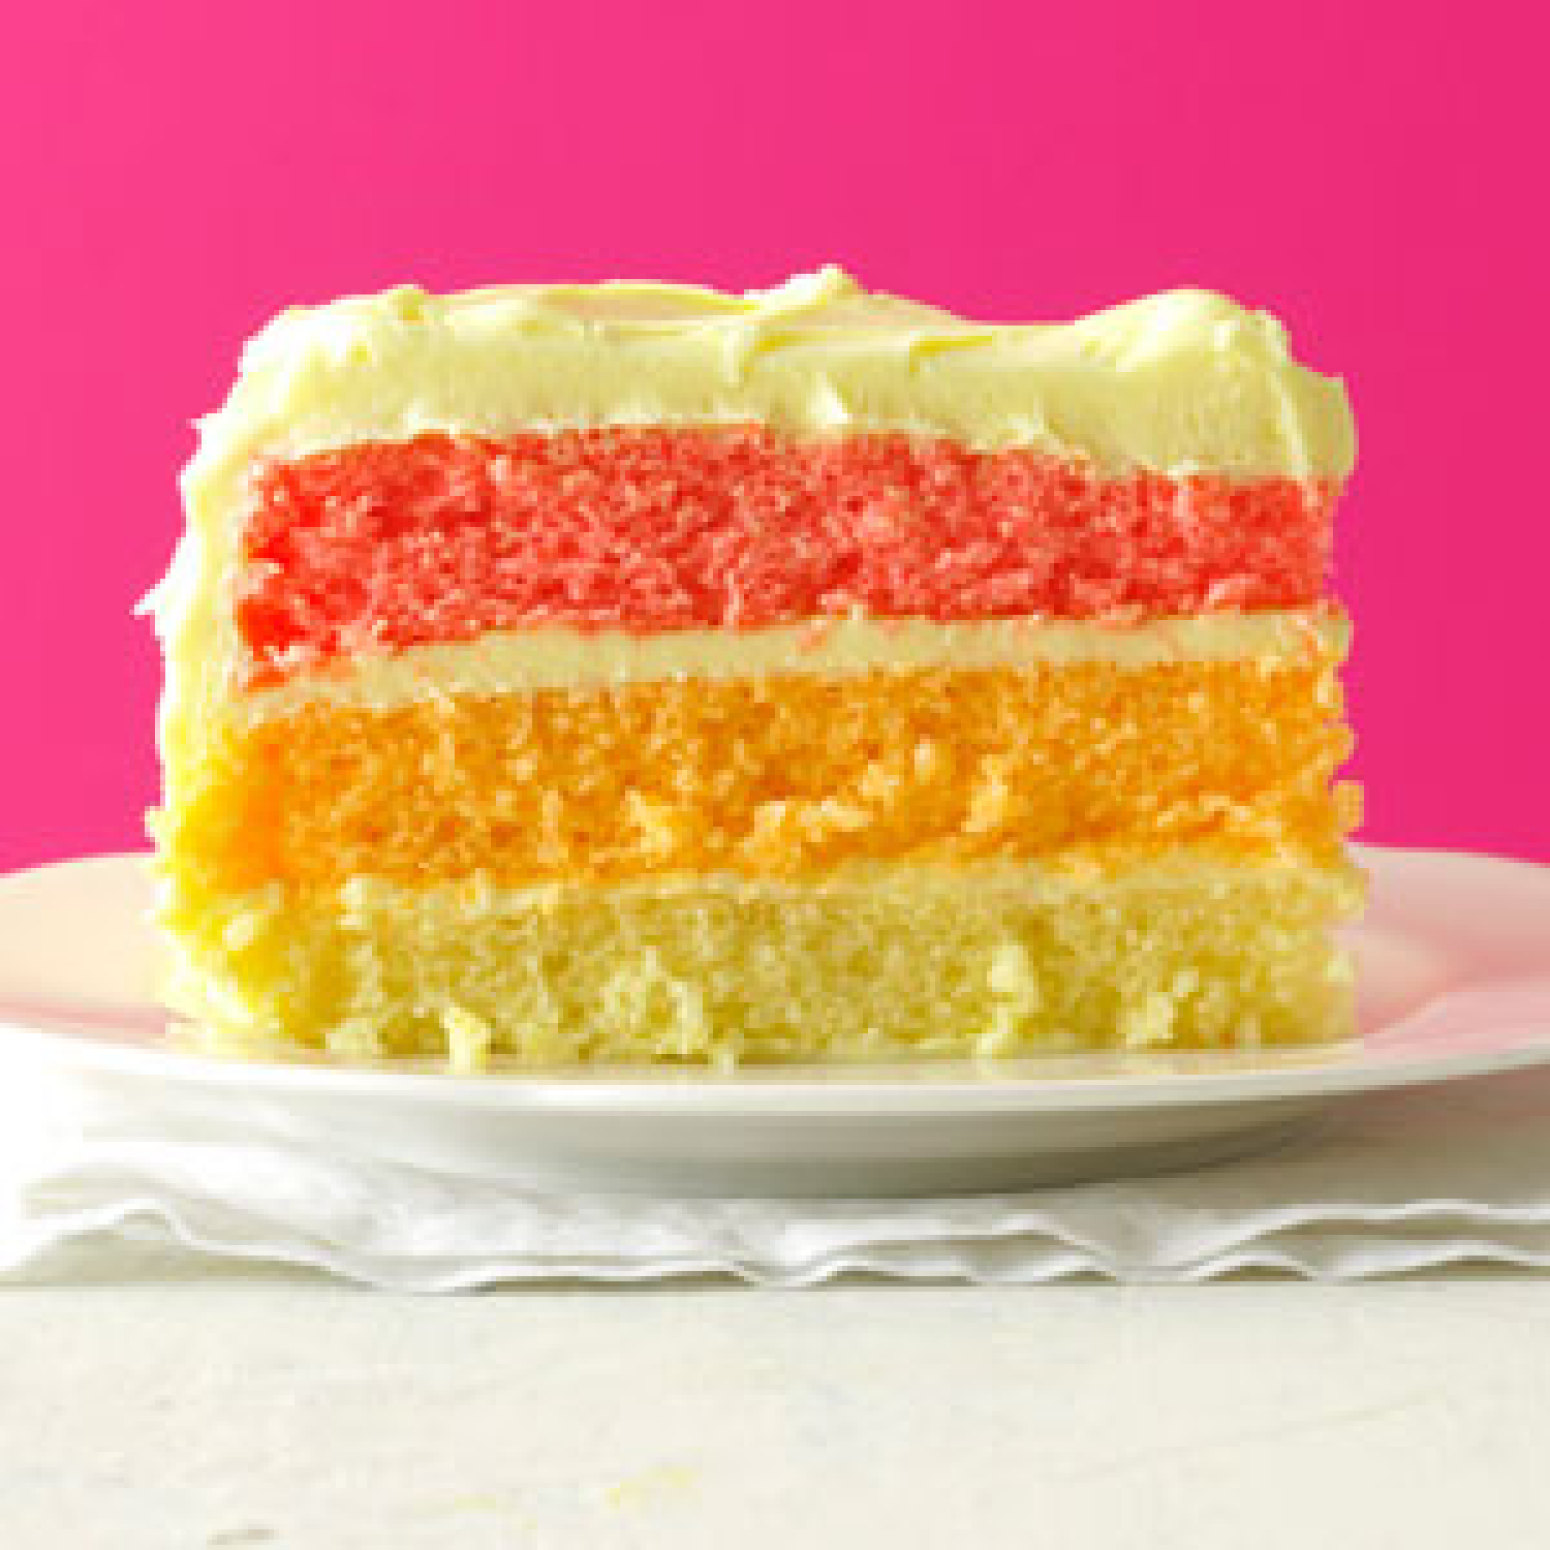 Rainbow Cake Without Frosting